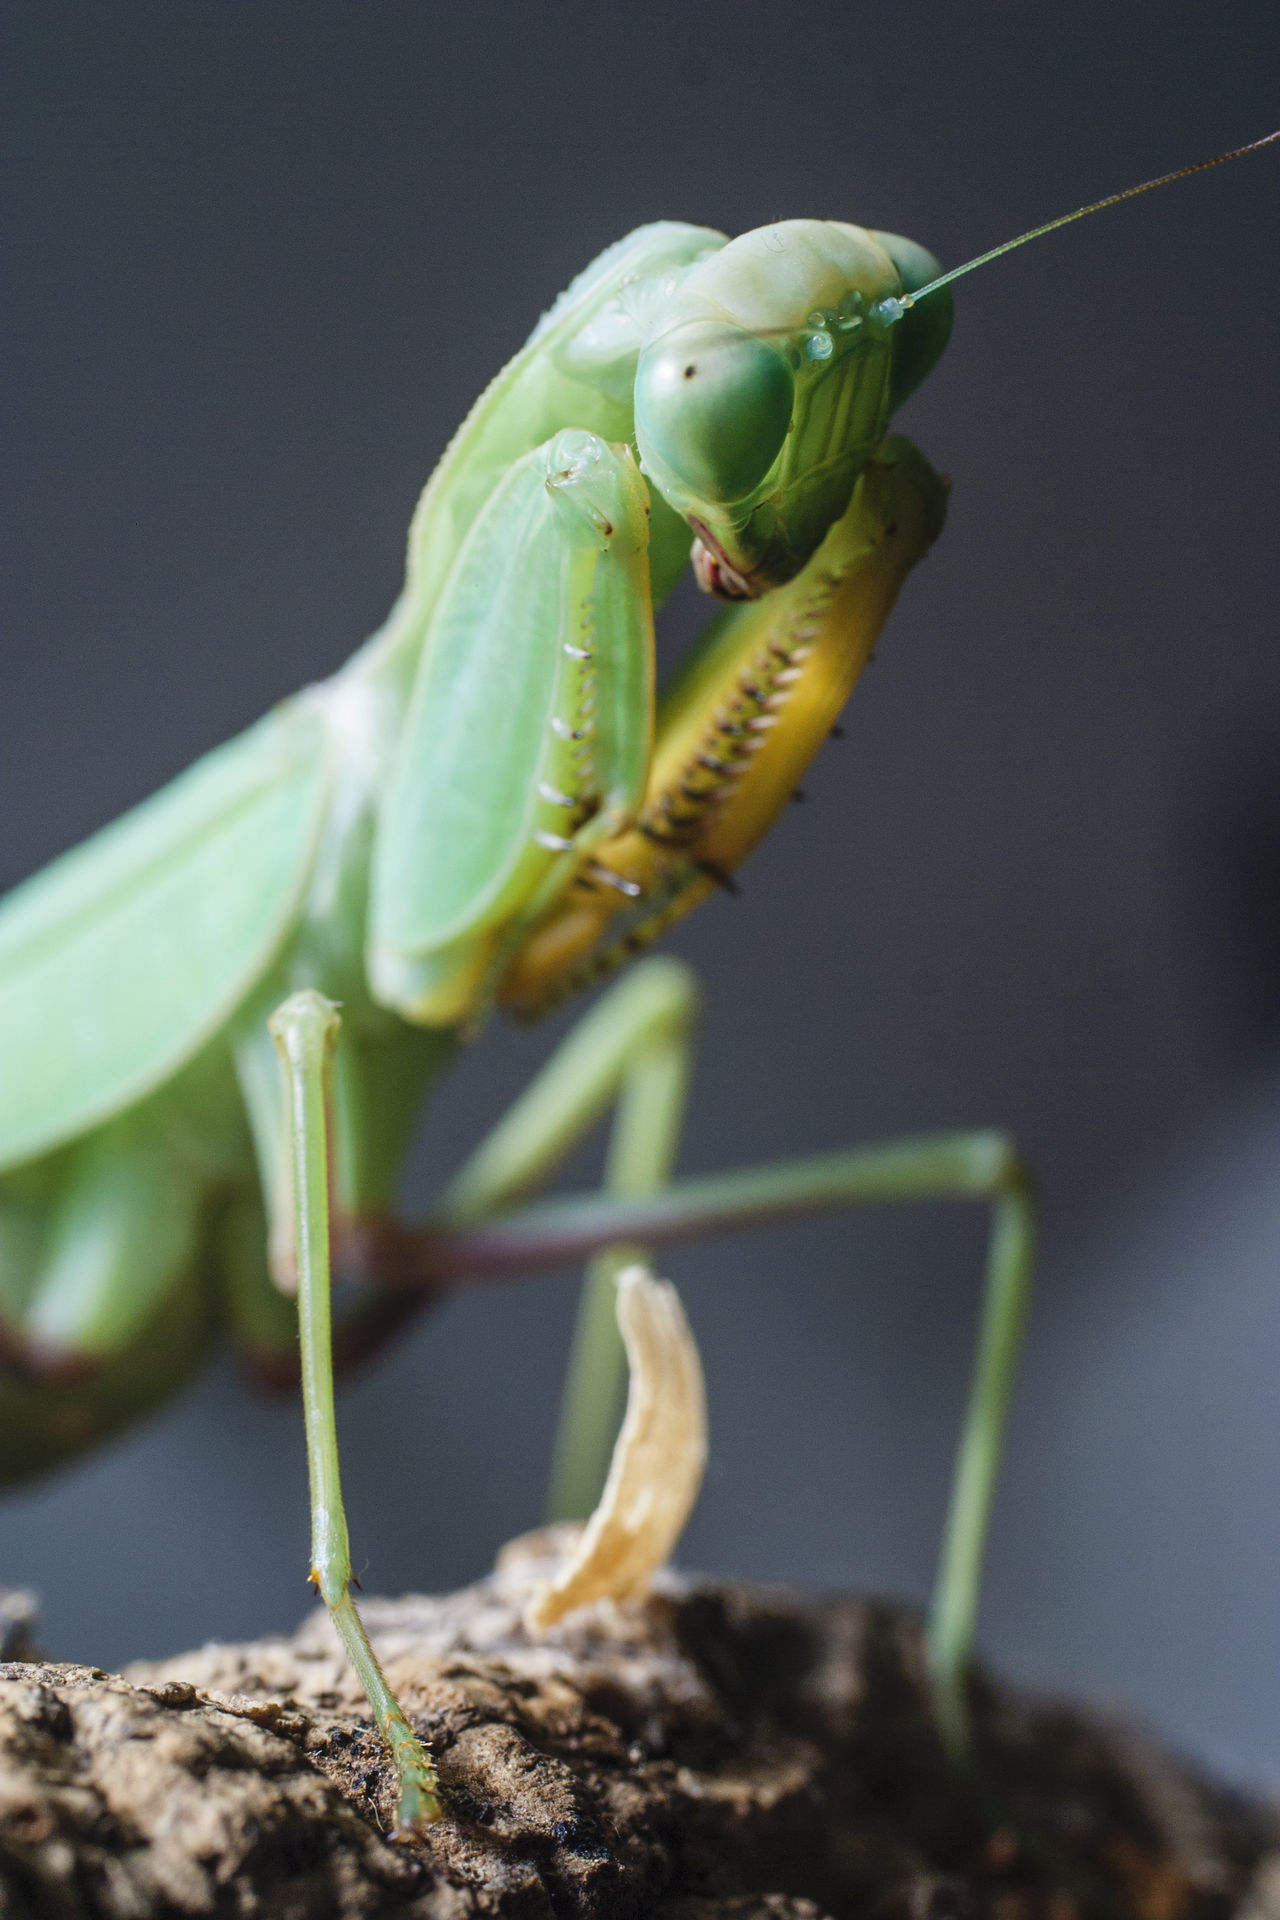 Antenna Close-up Dangerous Beauty Exotic Pets EyeEmNewHere Insect Macro Mating Ritual One Animal One Insect Pet Praying Mantis Preying Mantis Shallow Depth Of Field